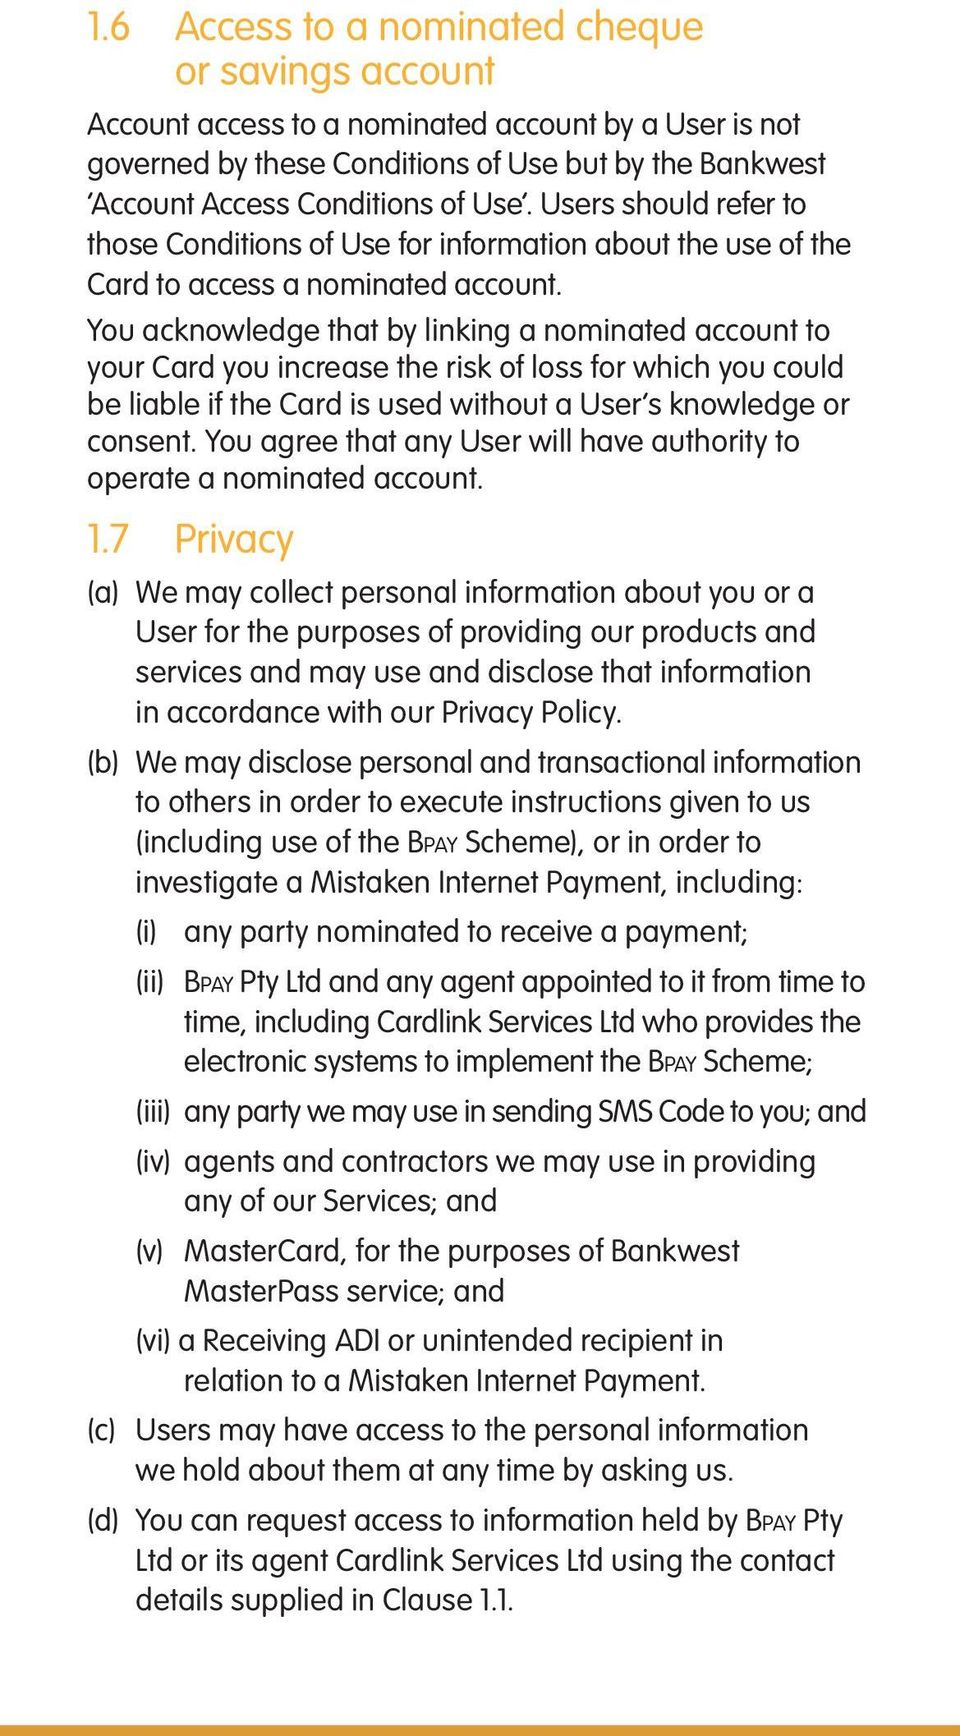 You acknowledge that by linking a nominated account to your Card you increase the risk of loss for which you could be liable if the Card is used without a User s knowledge or consent.